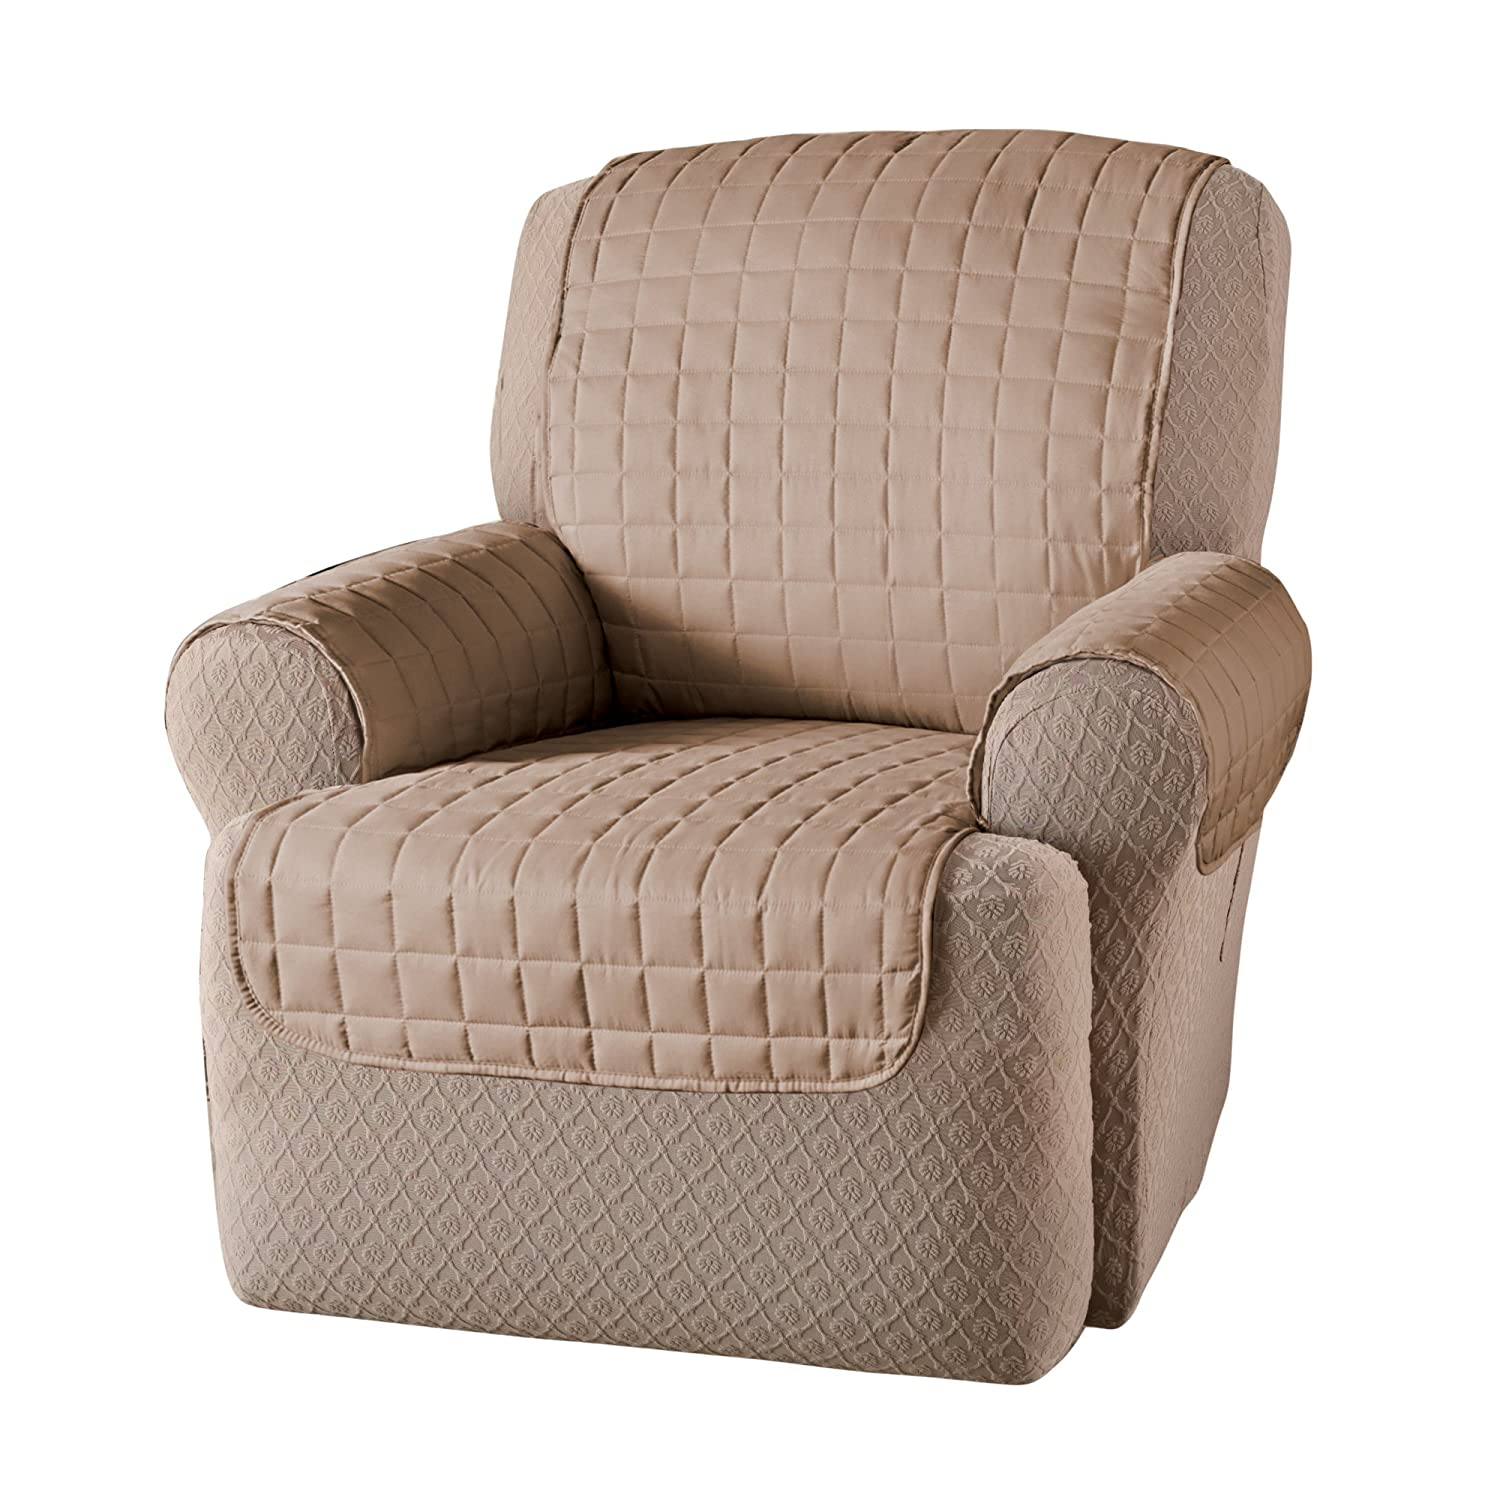 Recliner protector polyester chair furniture cover for Kids recliner chair